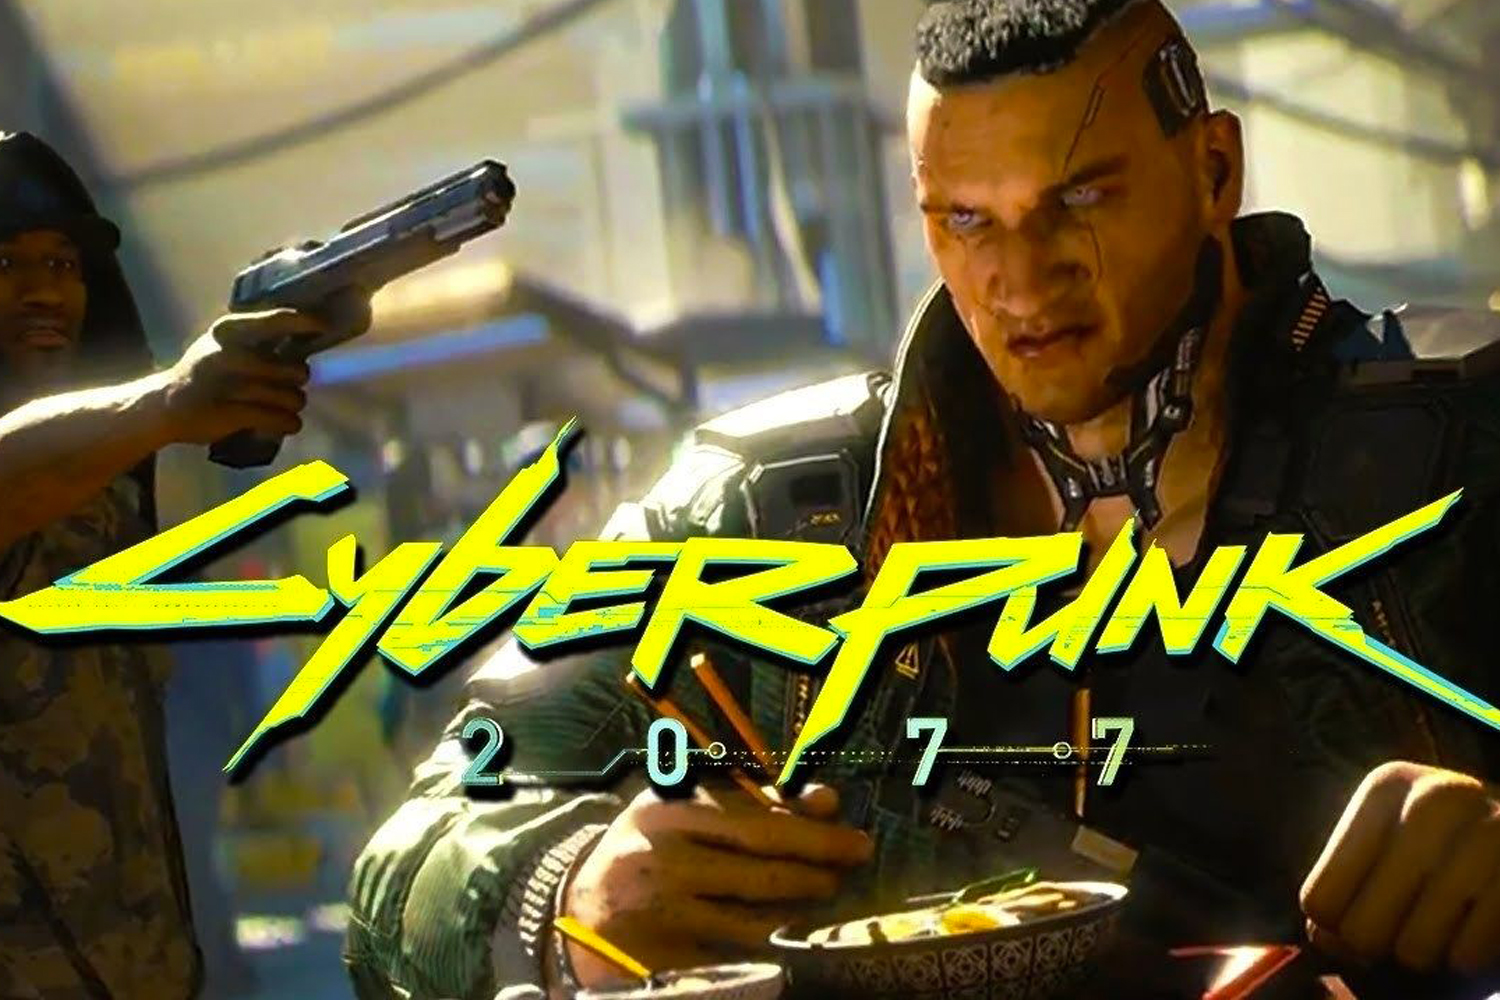 Cyberpunk 2077 is the fastest-selling PC game of all time